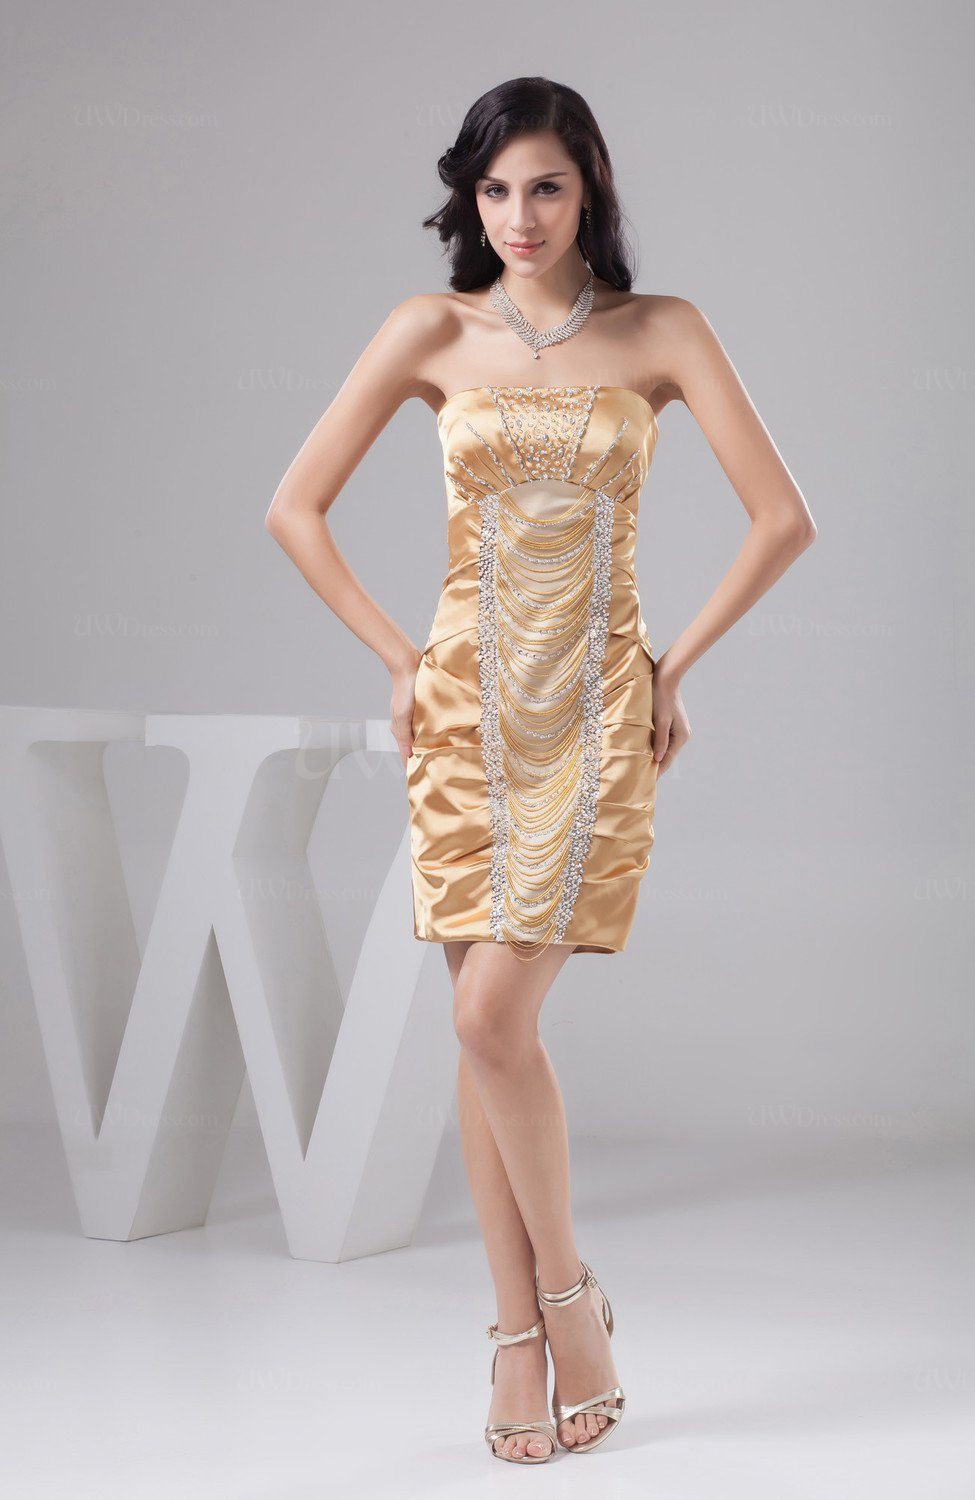 Beige Unique Bridesmaid Dress Beach Sexy Sheath Tight Classy Natural Low Back Uwdress Com